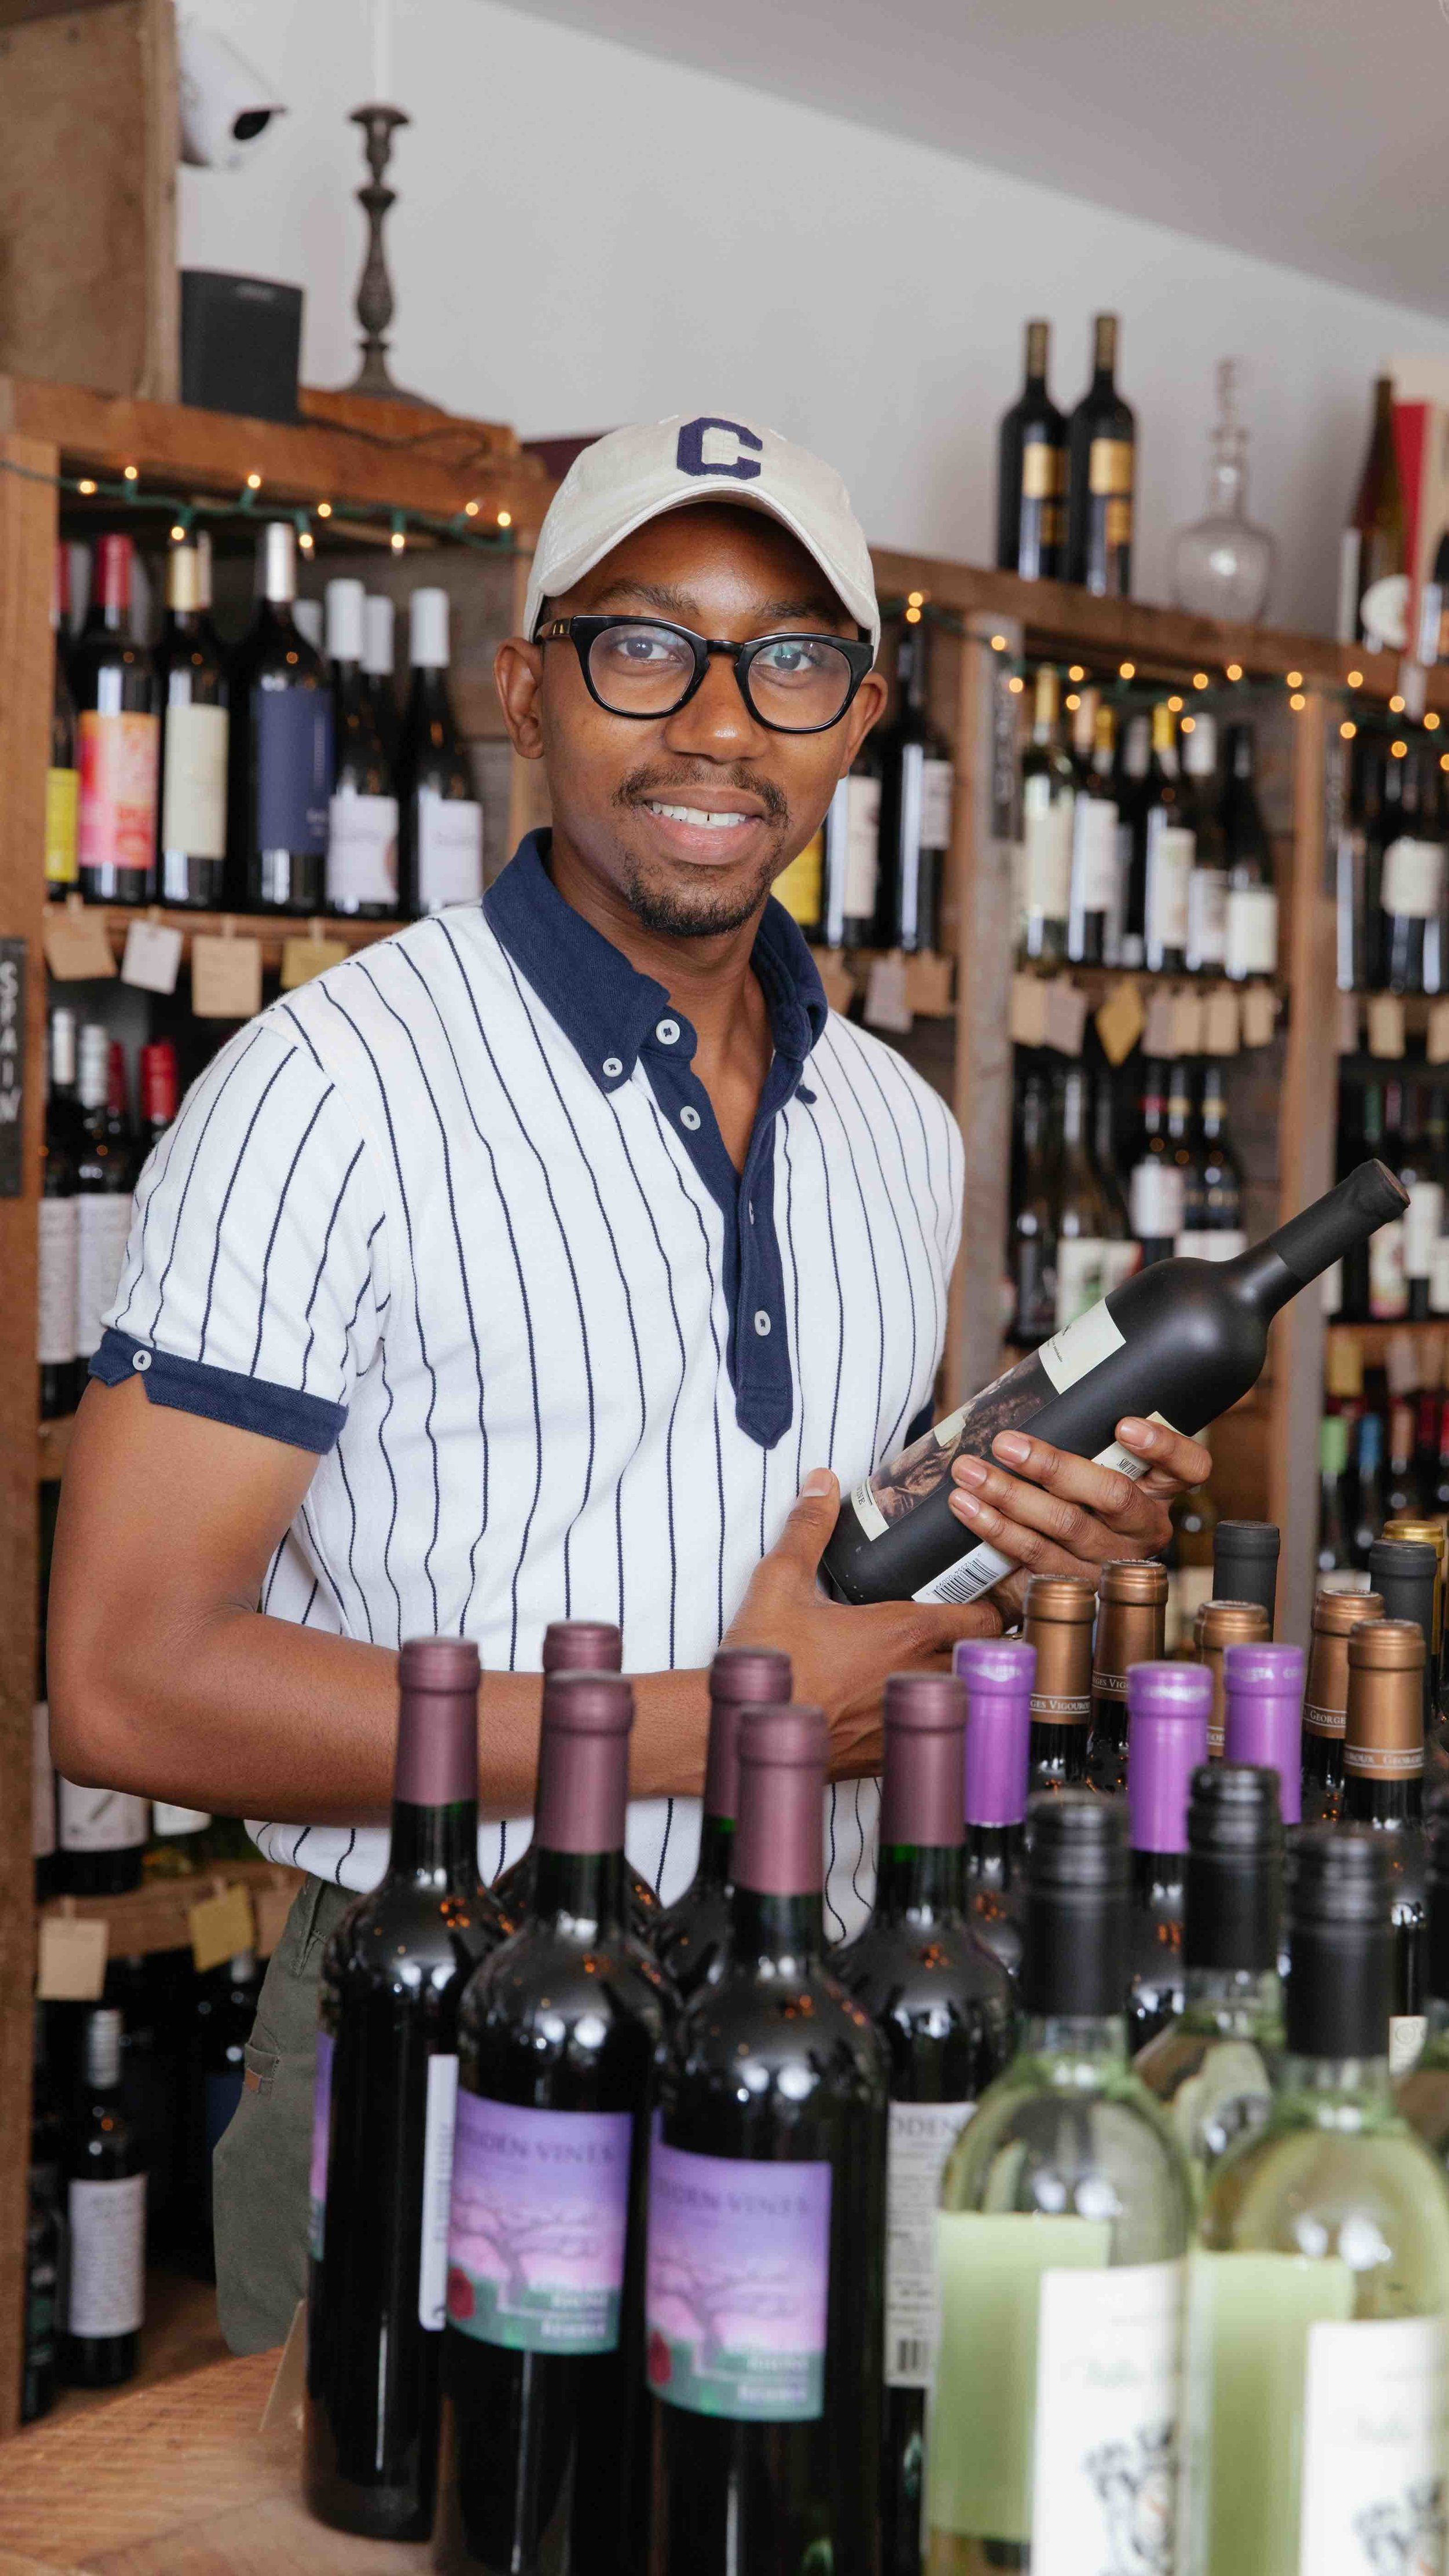 Striver, Former Host of the Are&Be Podcast on Spotify & Columbia Business School MBA Student Chad Foster  at  Pompette Wineshop  in Harlem